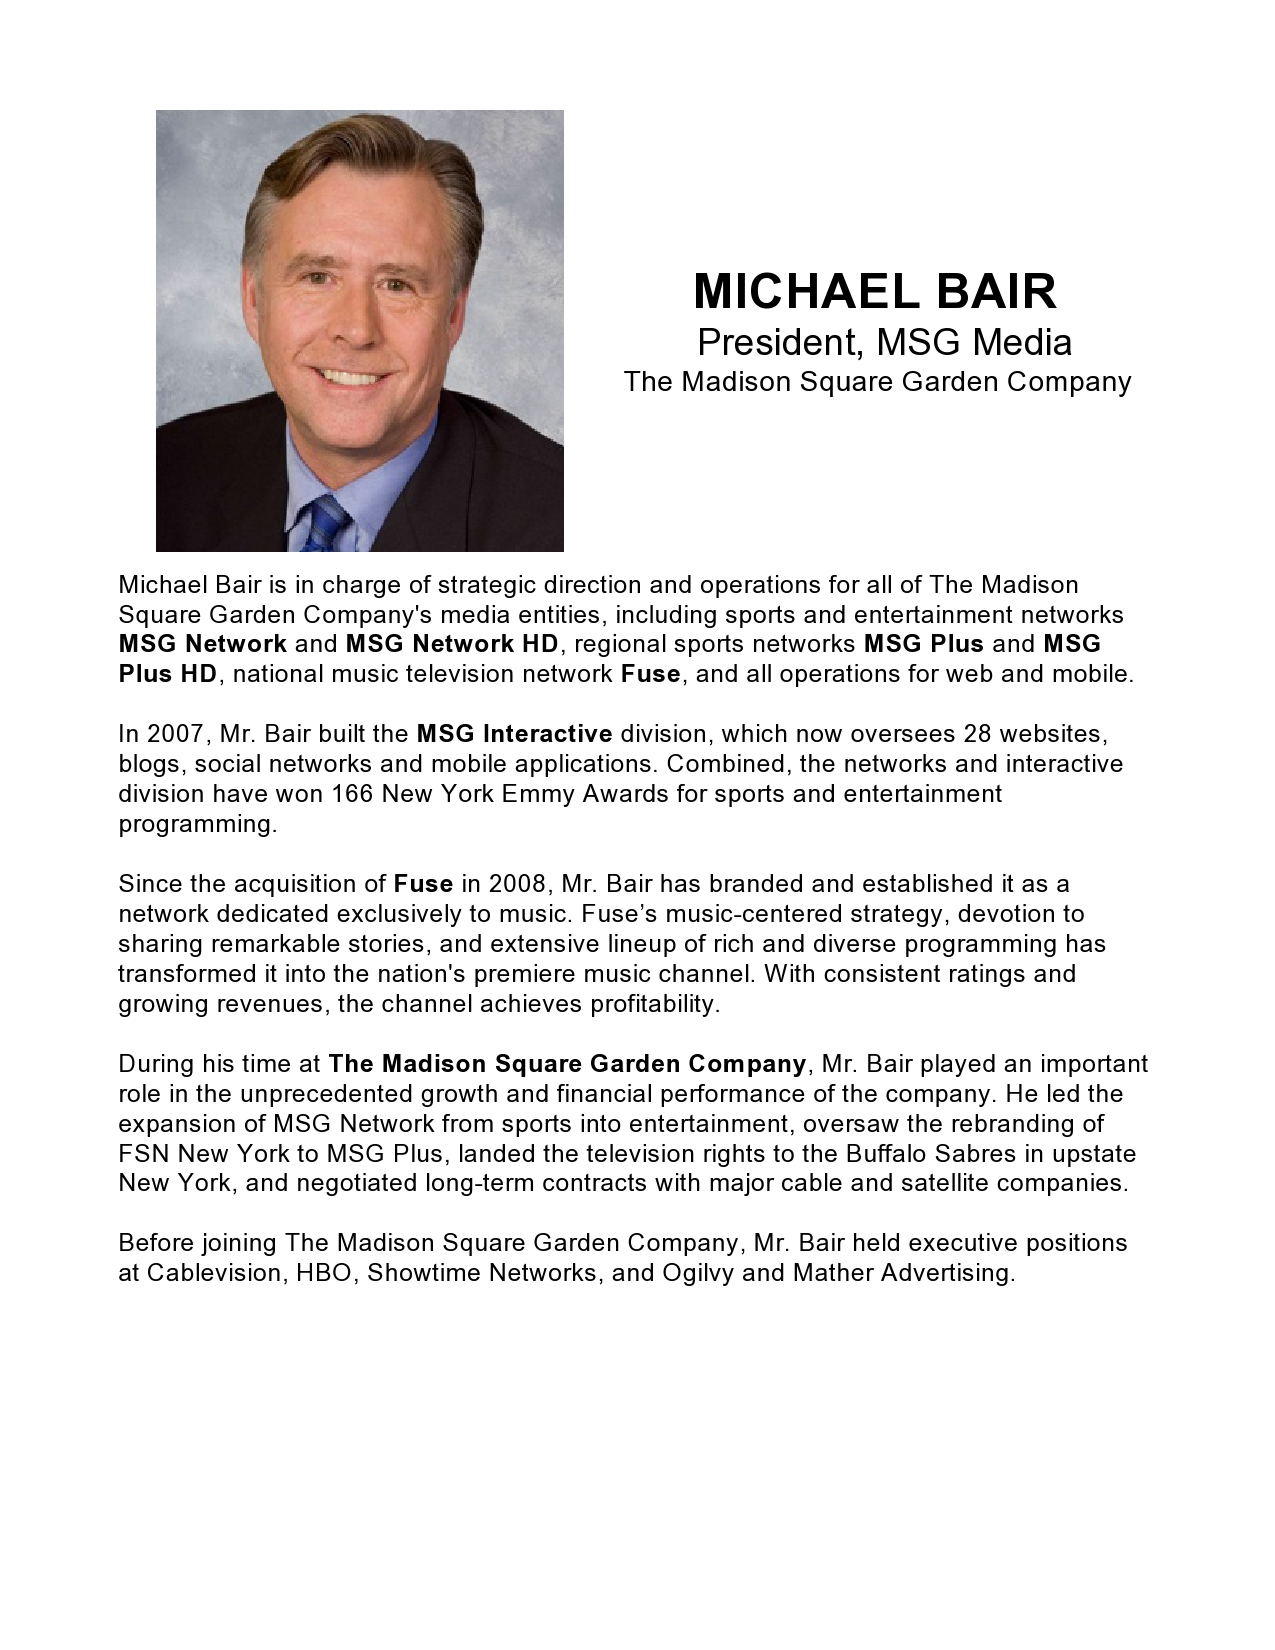 Press release templatemichael bair president msg media for Ceo press release template